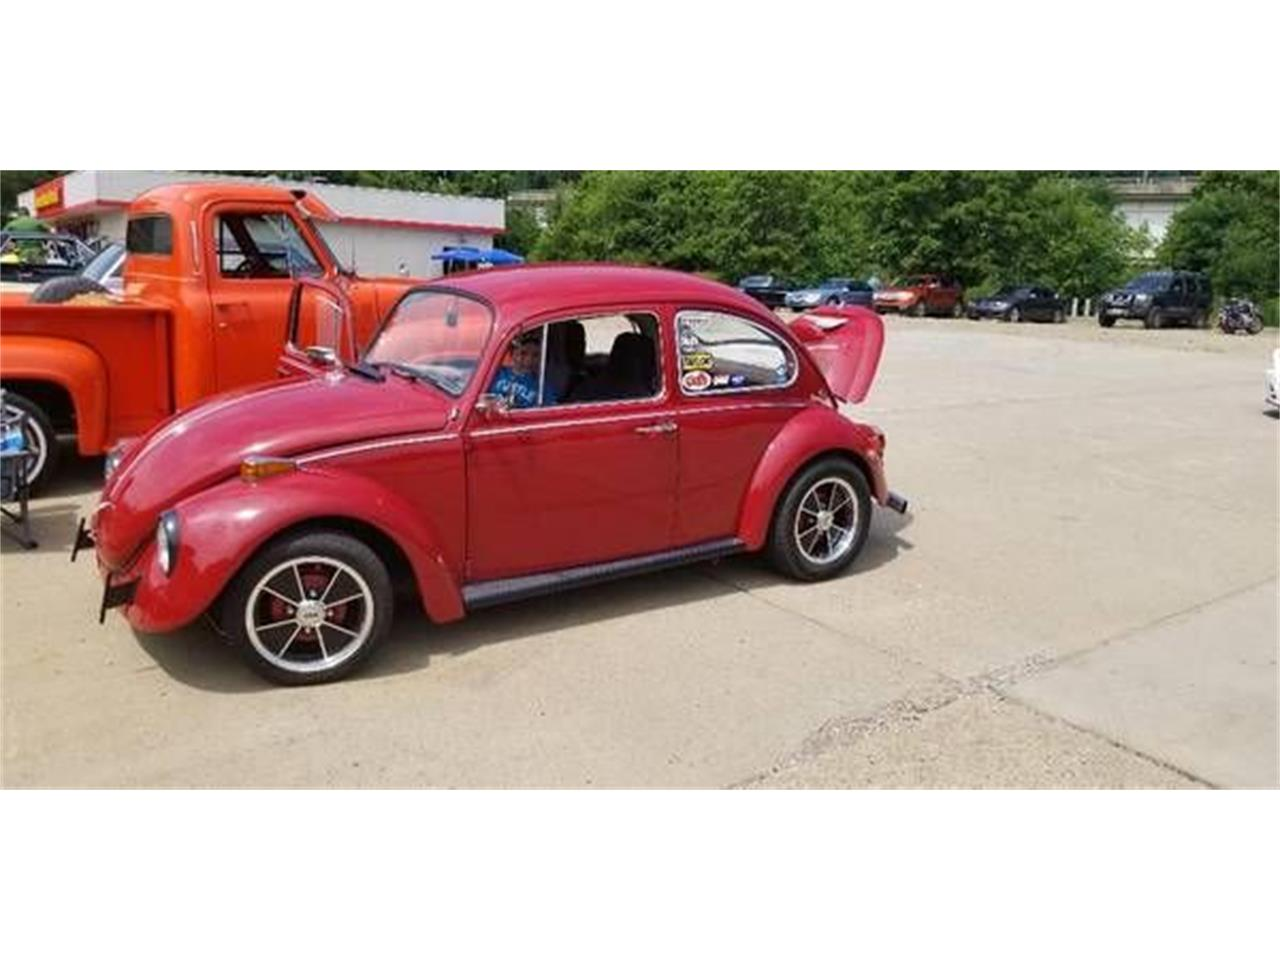 for sale 1970 volkswagen beetle in cadillac, michigan cars - cadillac, mi at geebo